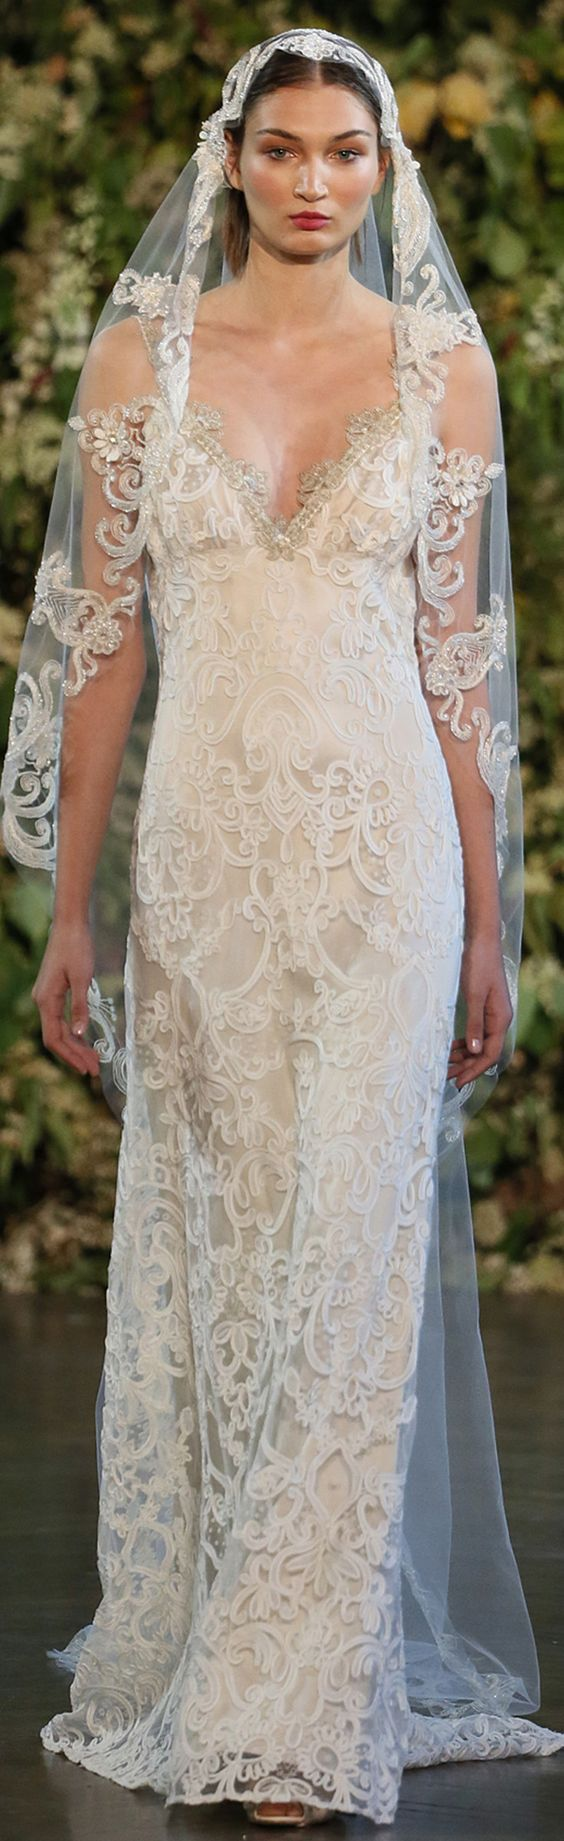 Faith wedding dress by Claire Pettibone paired with her Casablanca beaded veil https://shop.clairepettibone.com/products/casablanca-veil